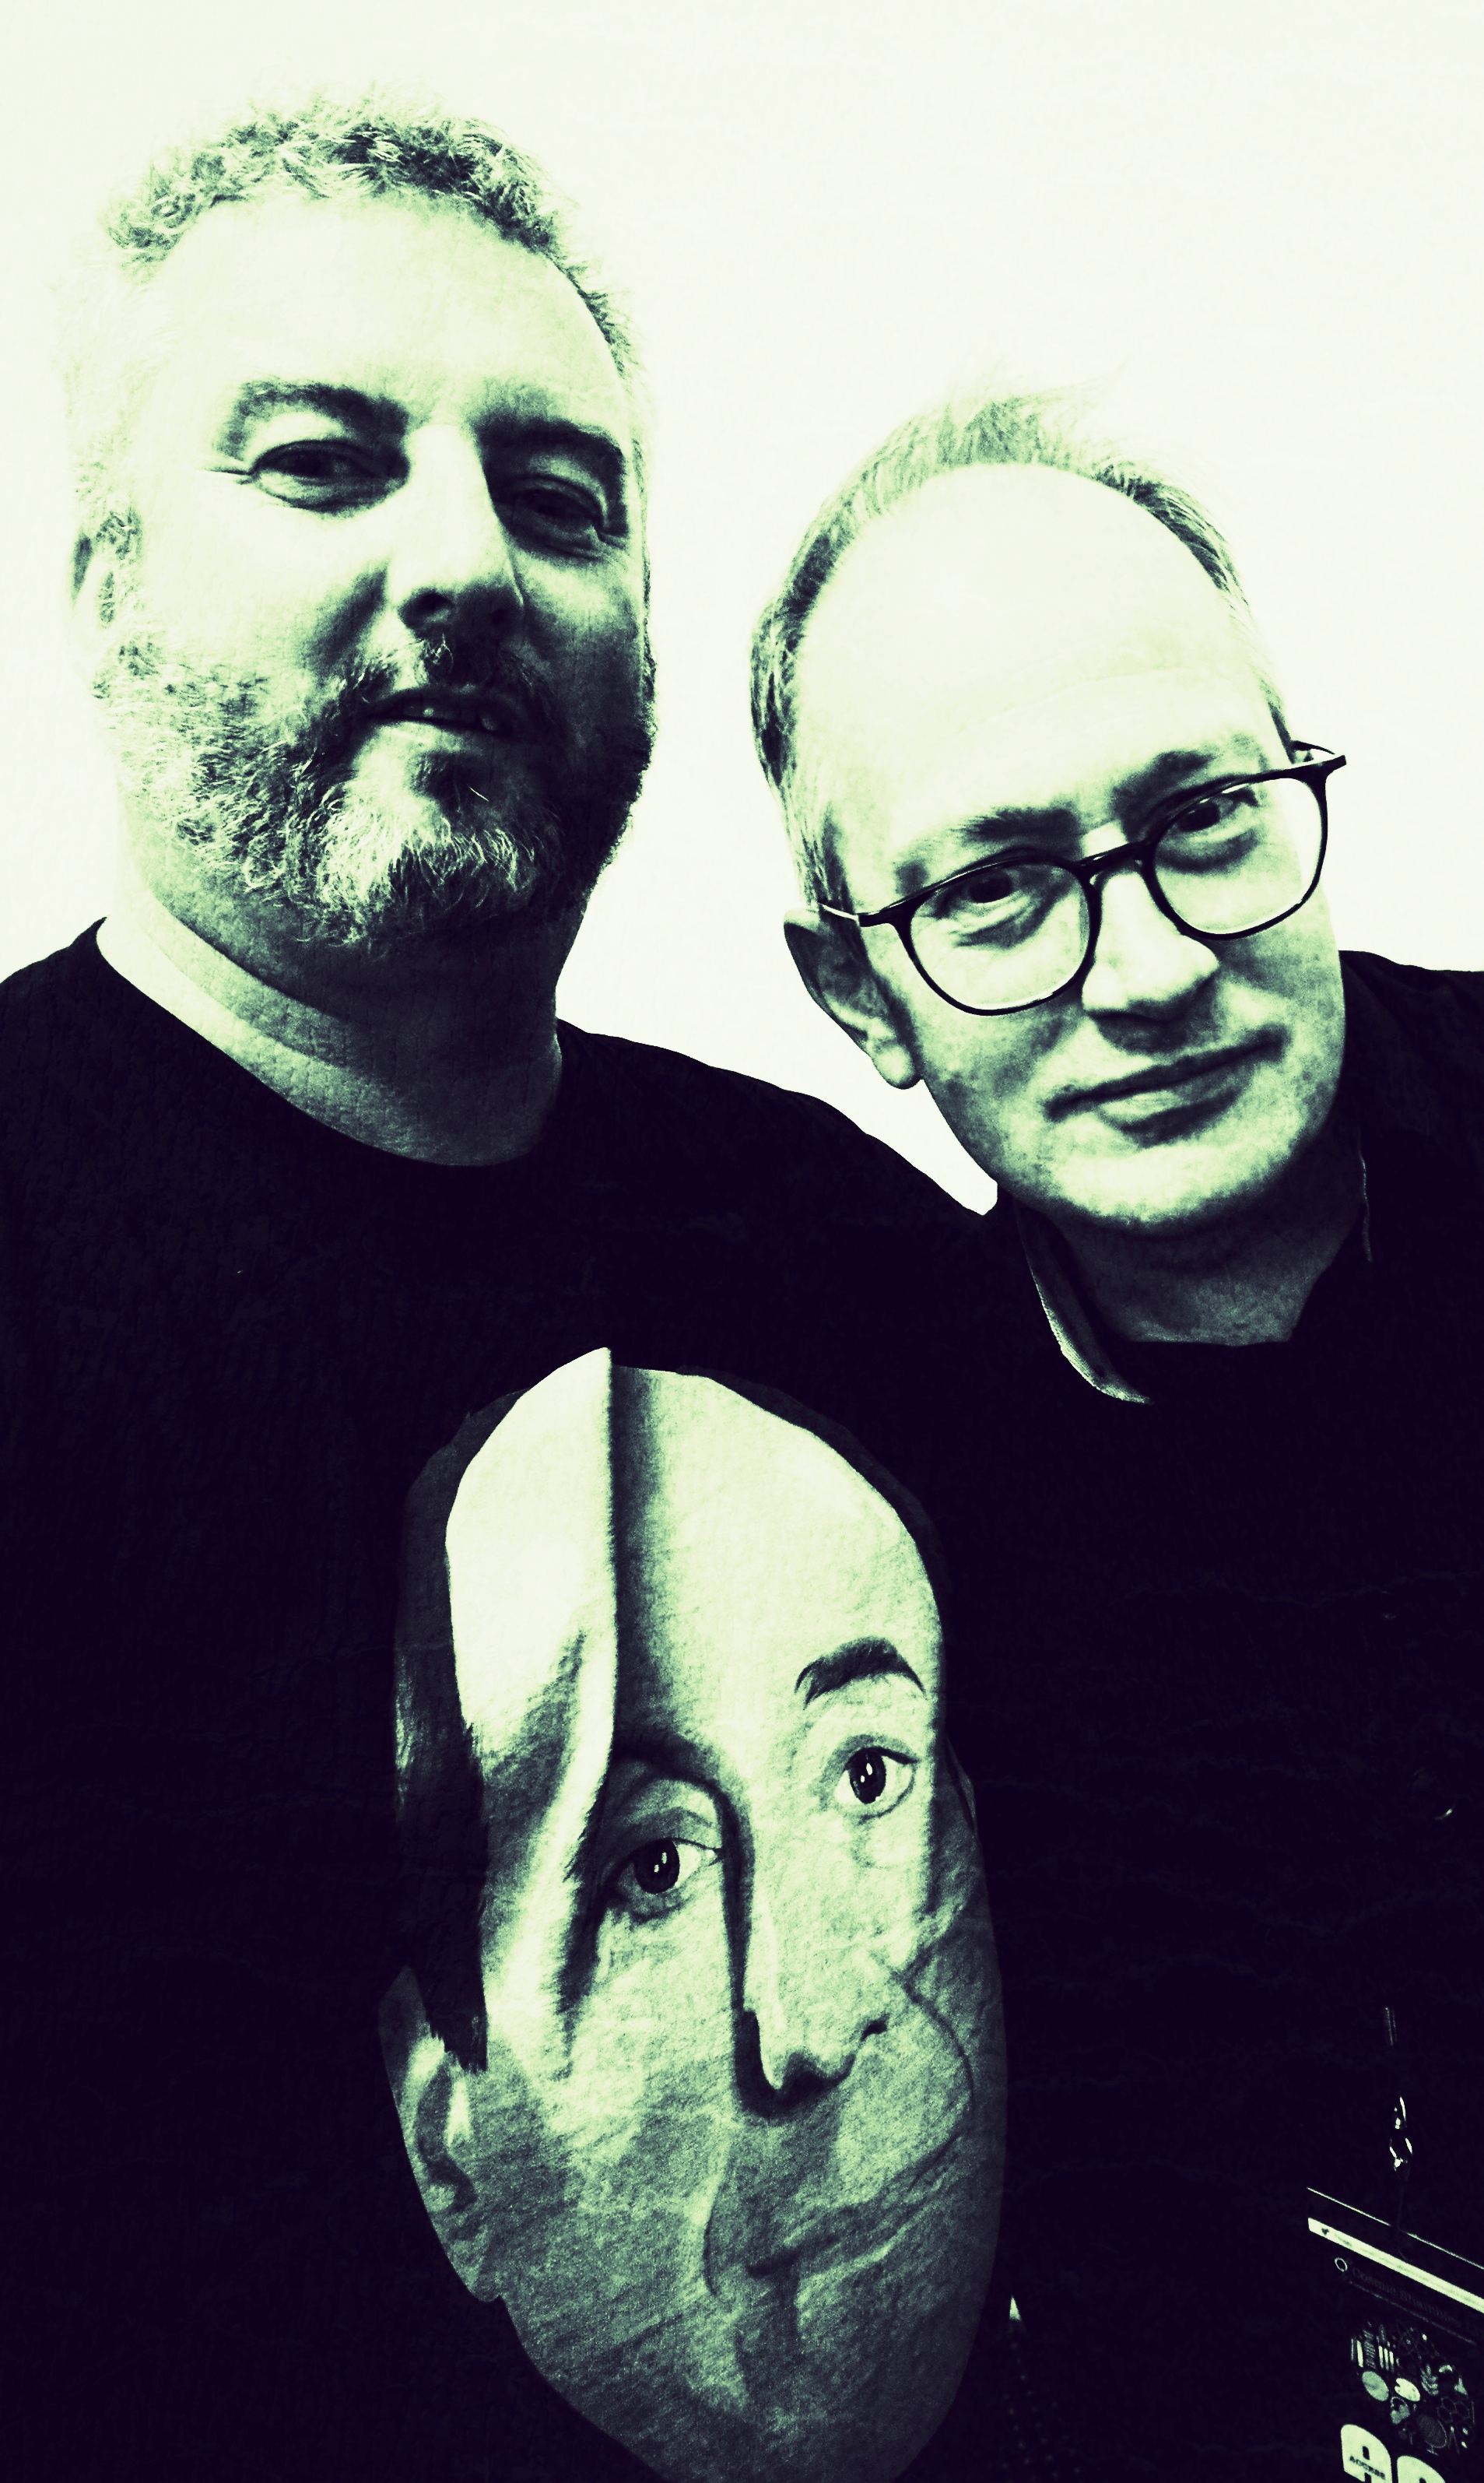 Mike with Robin Ince and a t-shirted Red Dwarf Holly